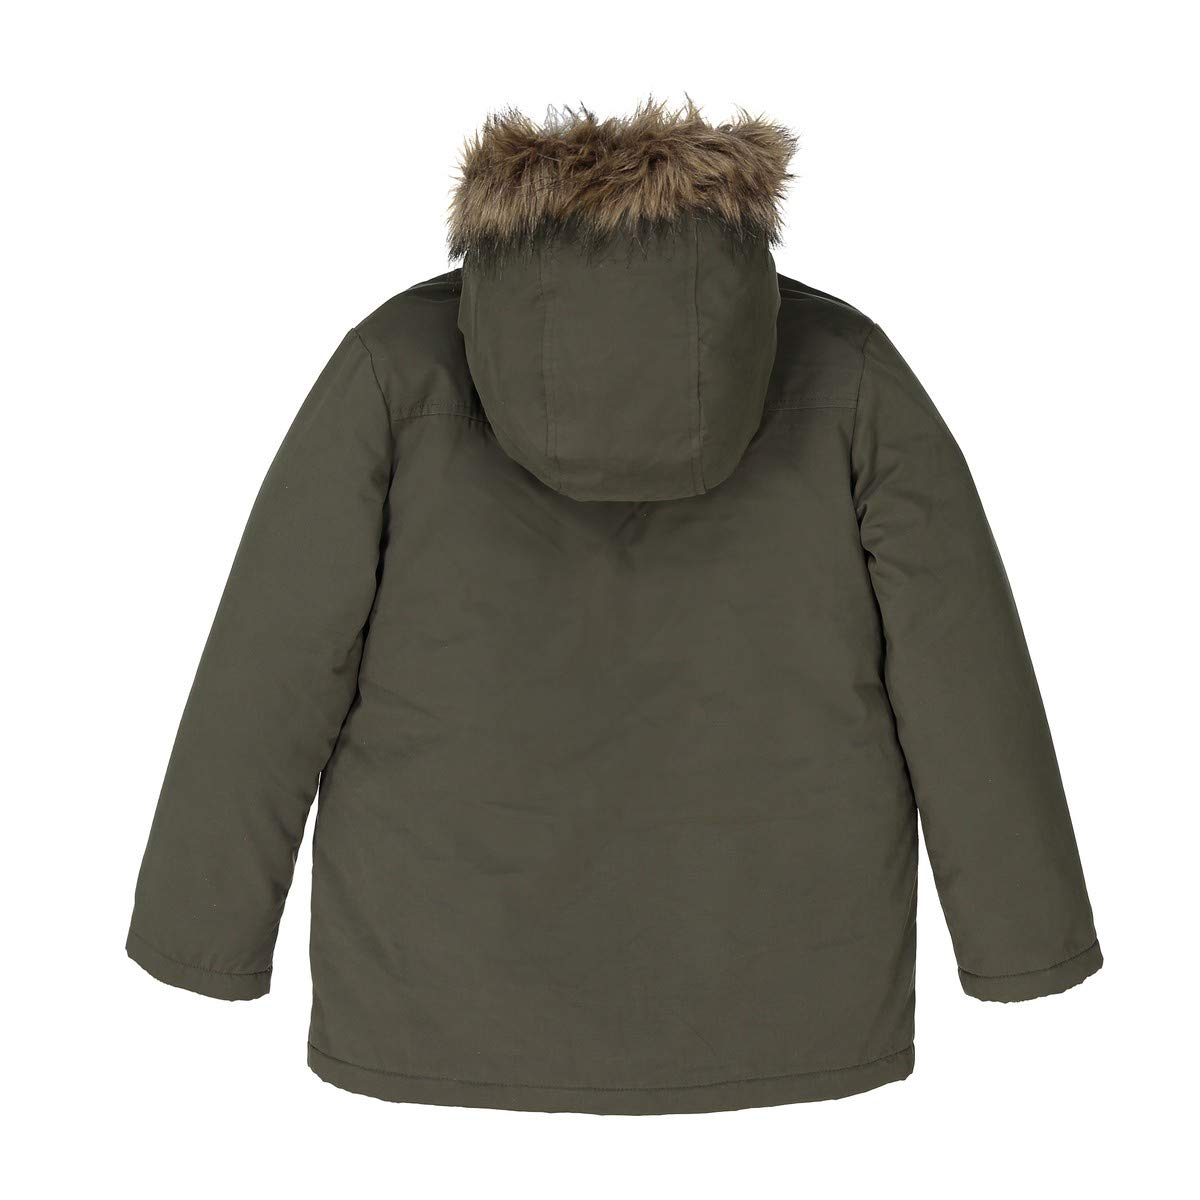 La Redoute Collections Big Boys 3-in-1 Parka, 3-12 Years Green Size 6 Years - 44 in. by La Redoute (Image #5)